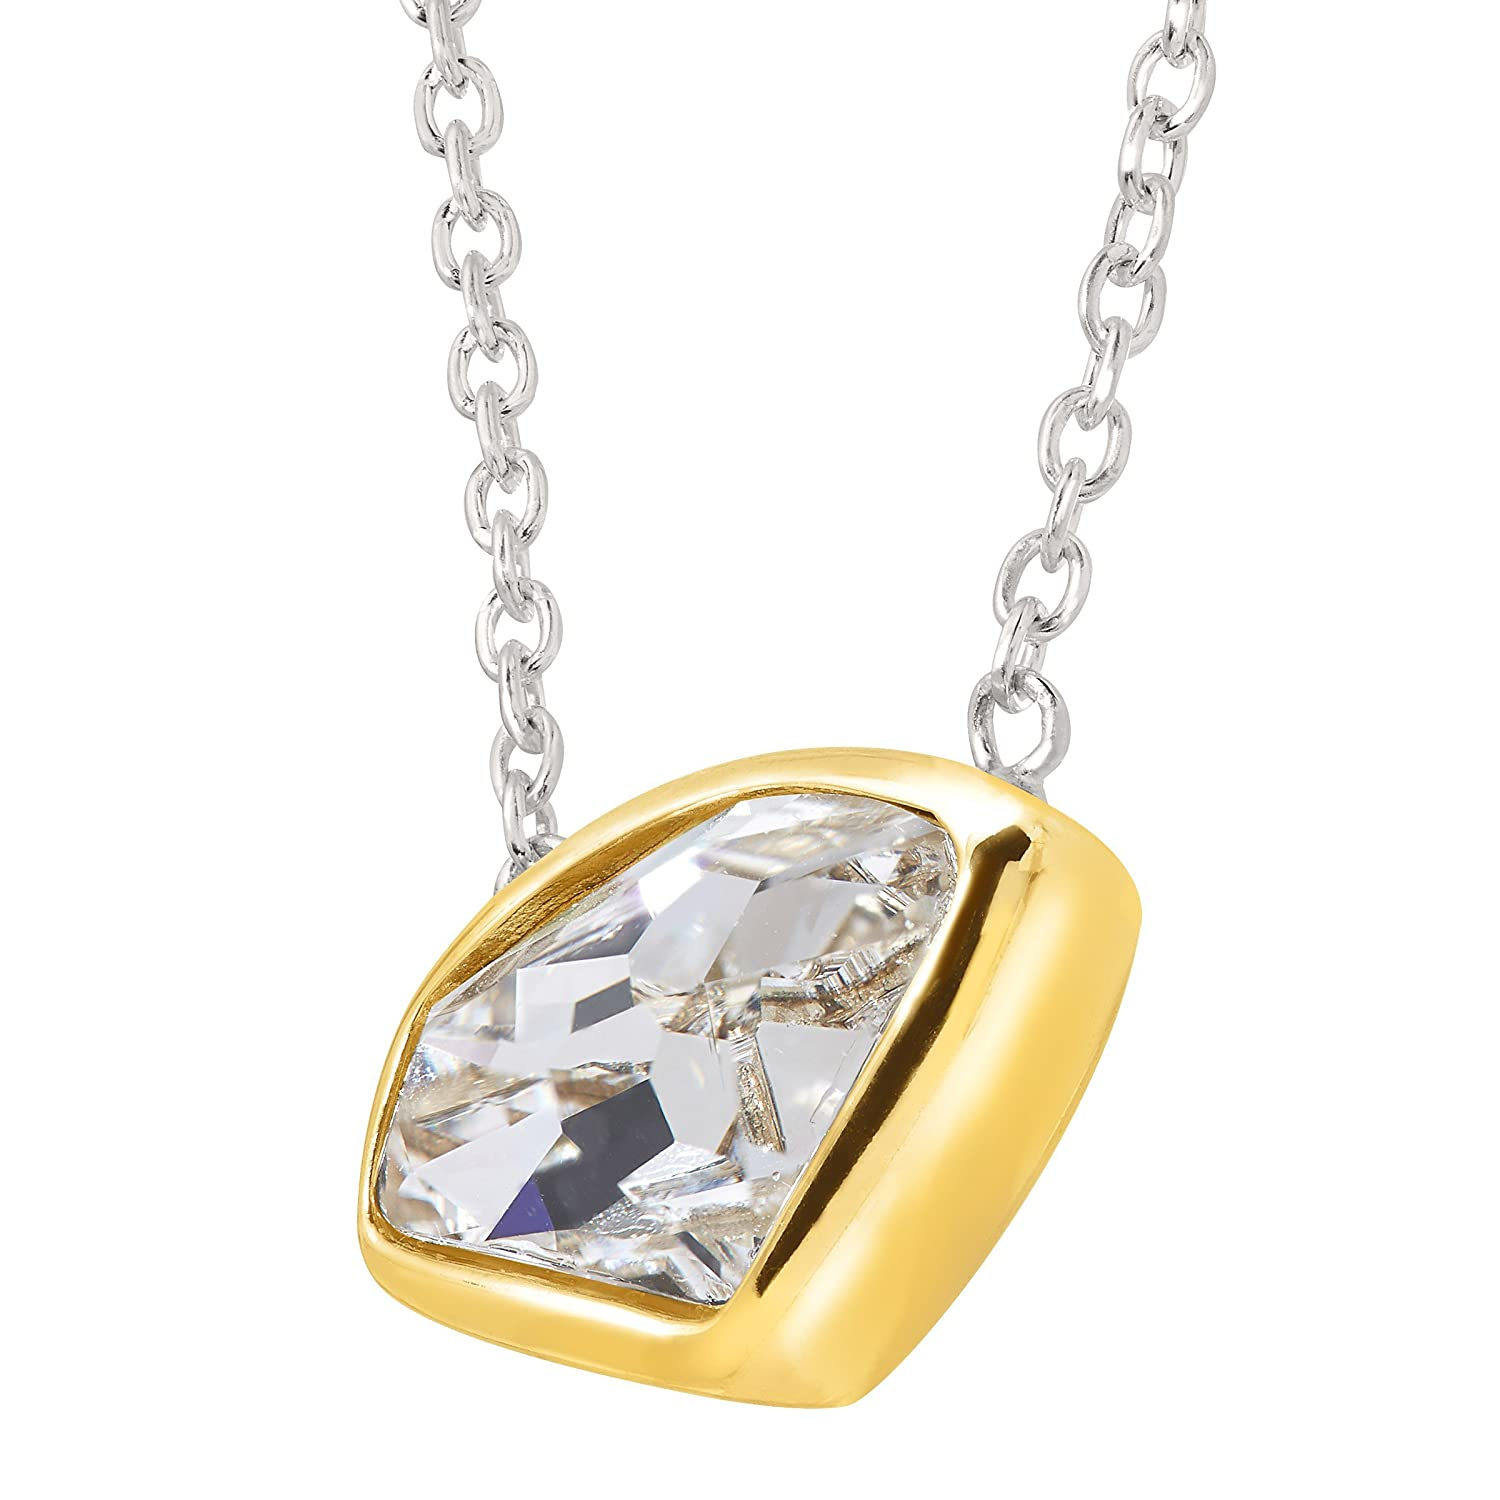 Silpada Dazzler Necklace with Swarovski Crystal in Sterling Silver Brass